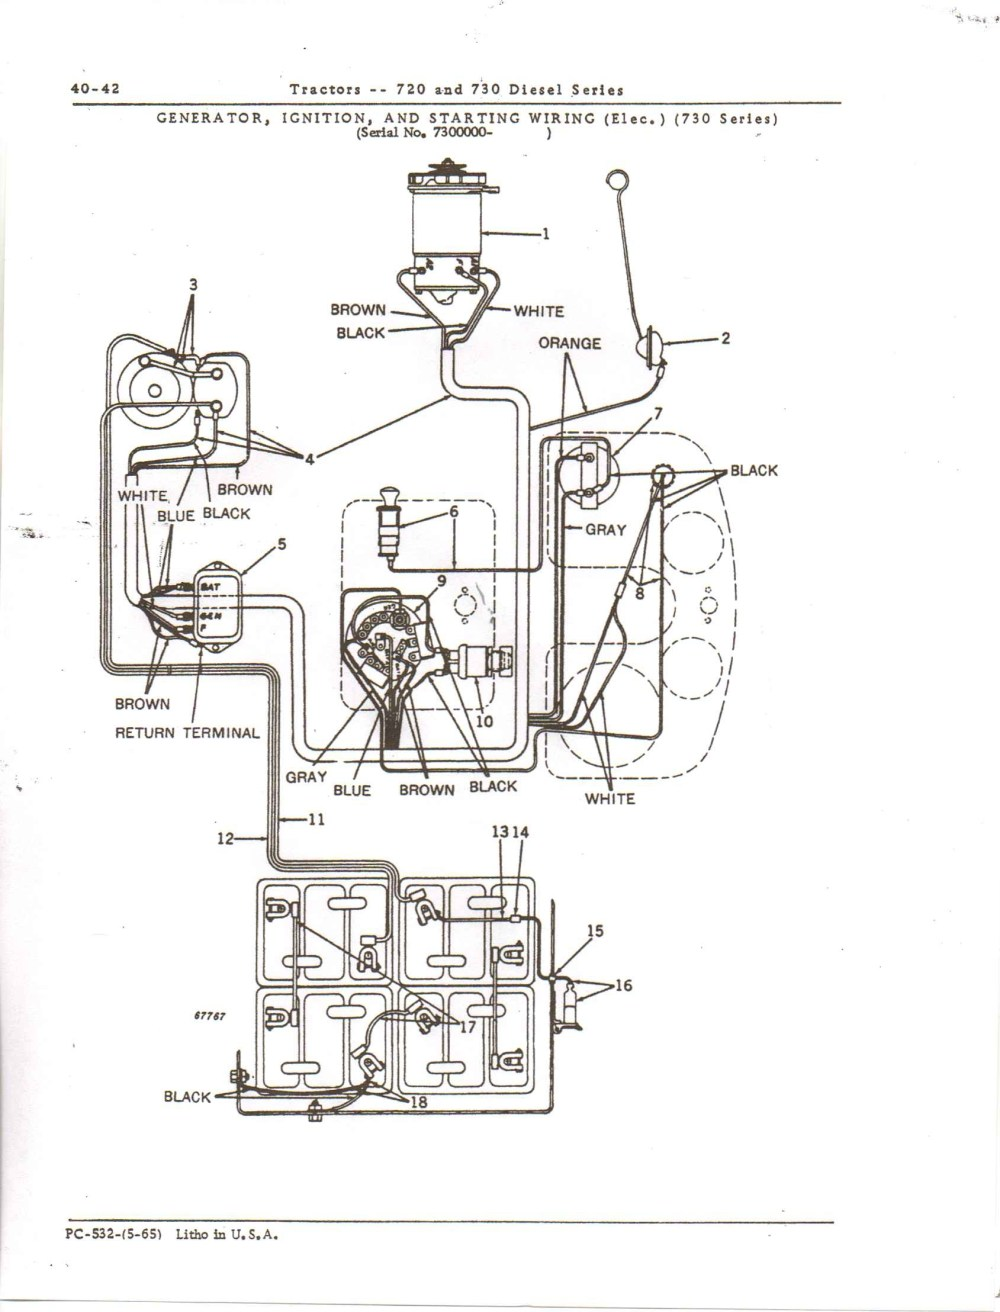 medium resolution of john deere 170 wiring diagram wiring diagram database mix john deere lawn mower wiring diagram